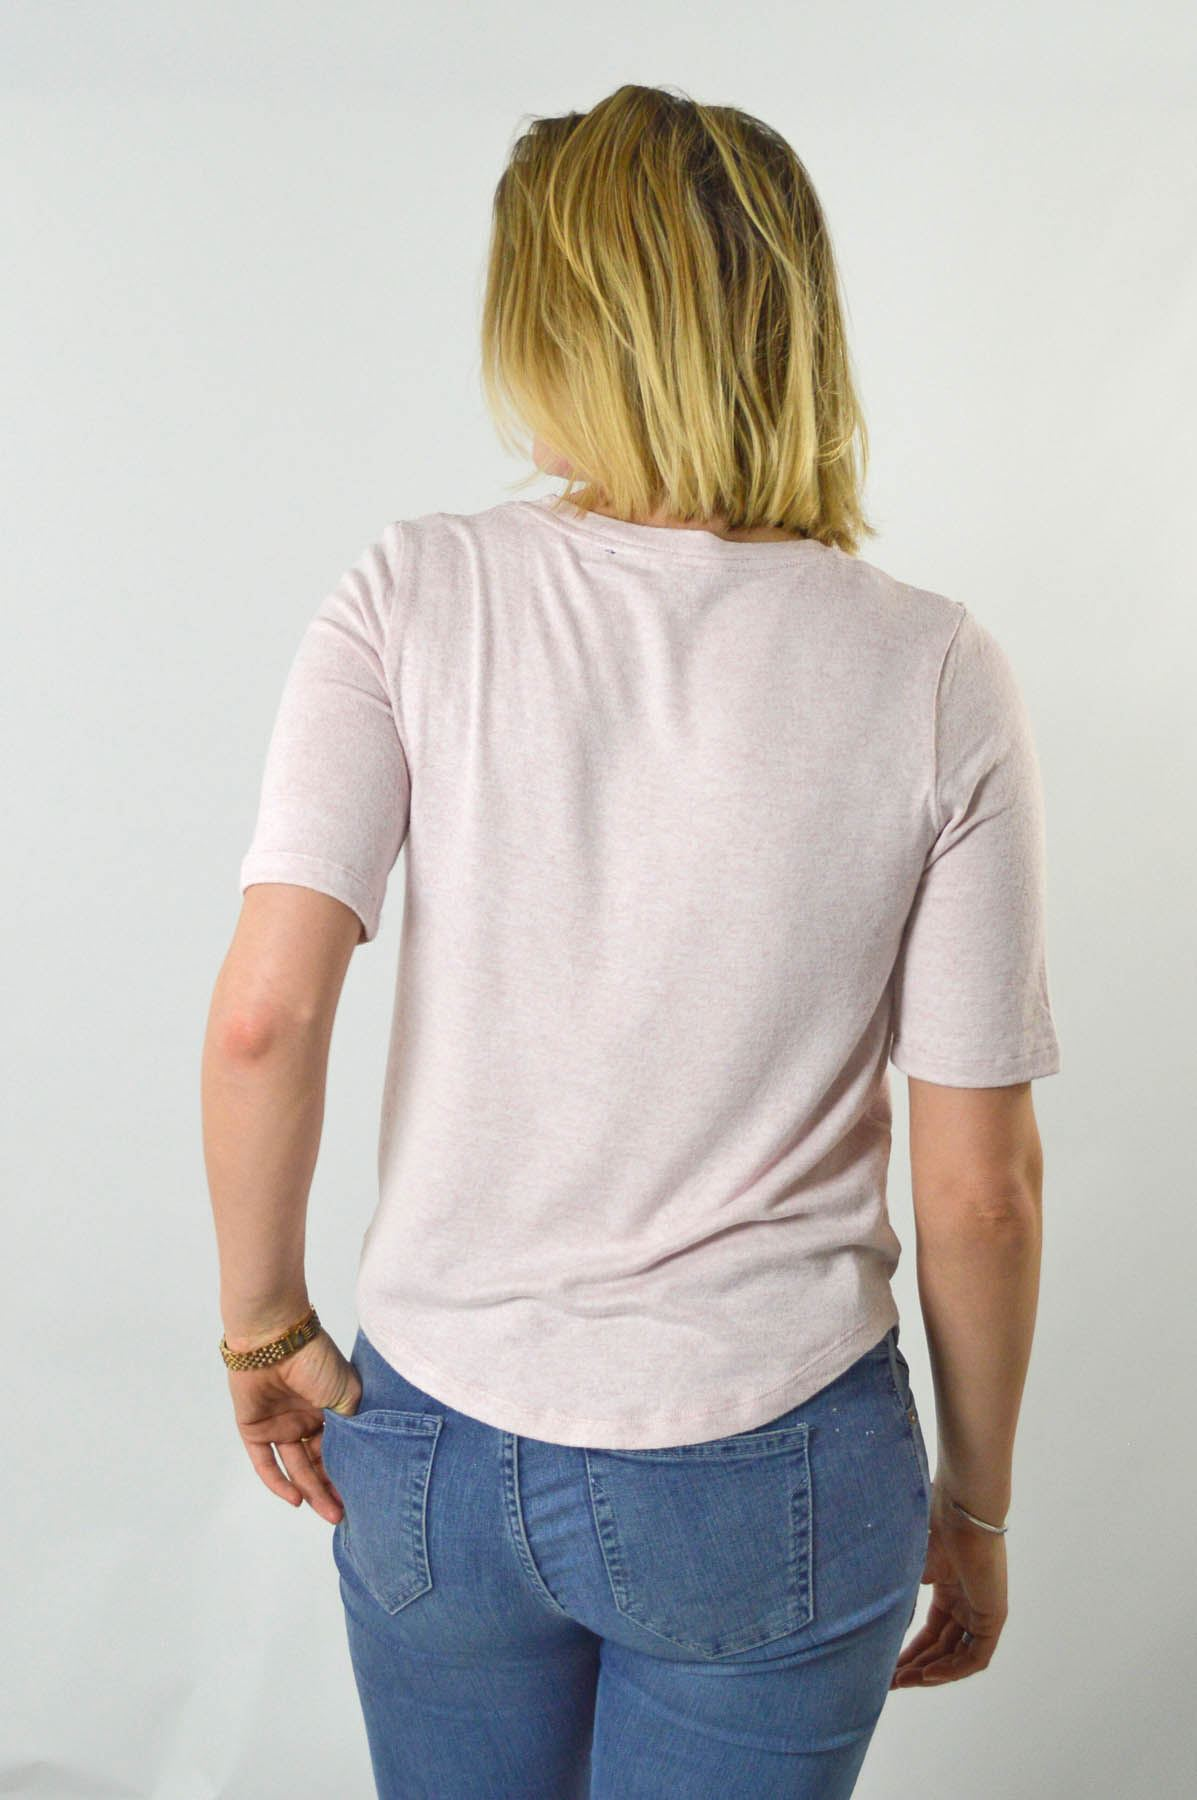 MARKS-AND-SPENCER-M-amp-S-Soft-Knit-Scoop-Neck-Top-Curved-Hem-Pale-Pink-Dark-Navy thumbnail 10